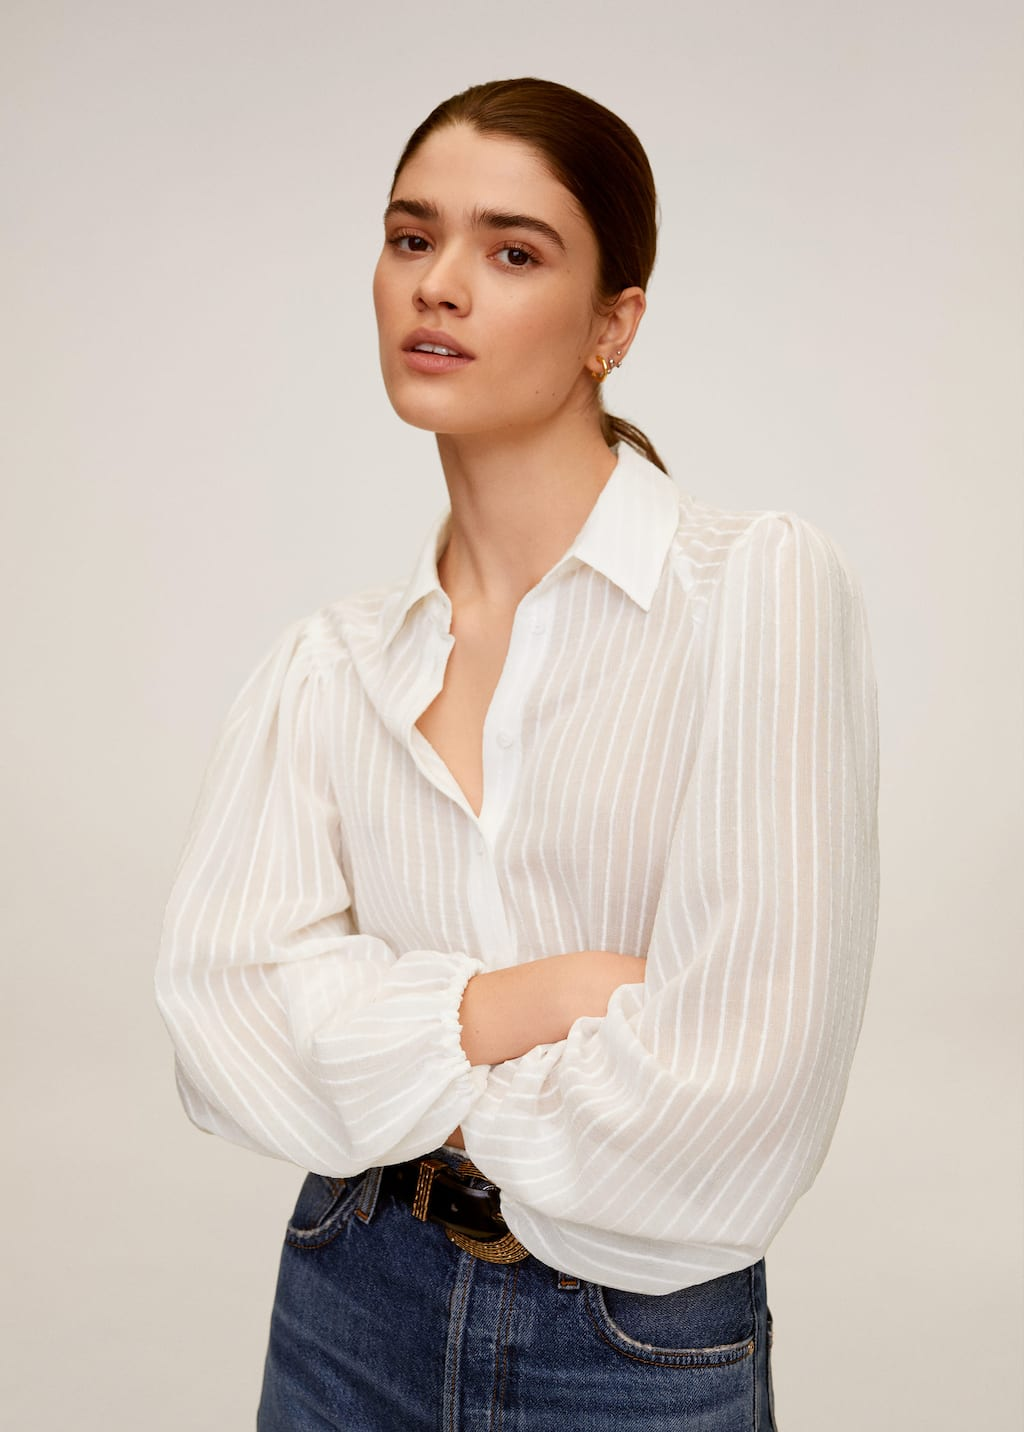 Puffed sleeves striped shirt - Medium plane